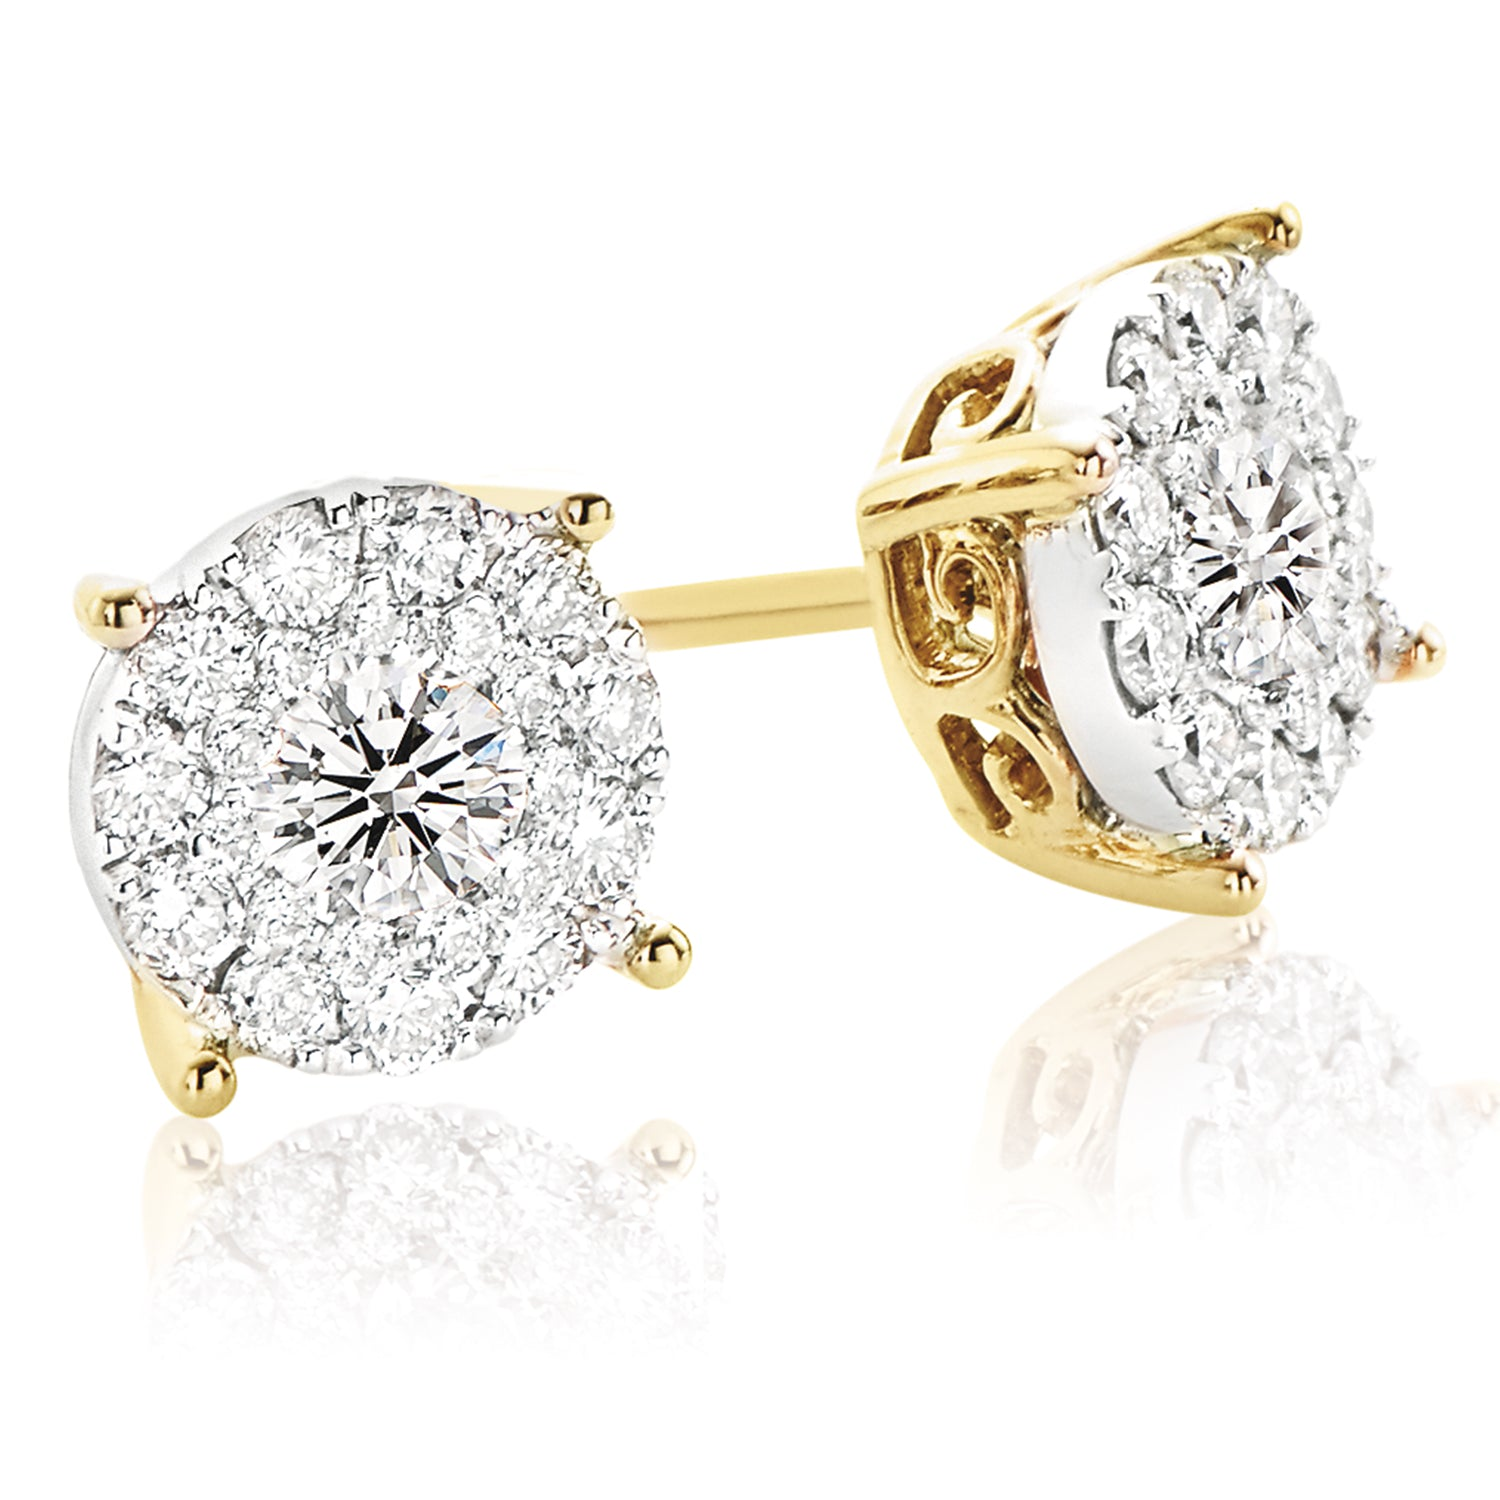 9ct Two Tone Gold Round Brilliant Cut with 1 CARAT tw of Diamonds